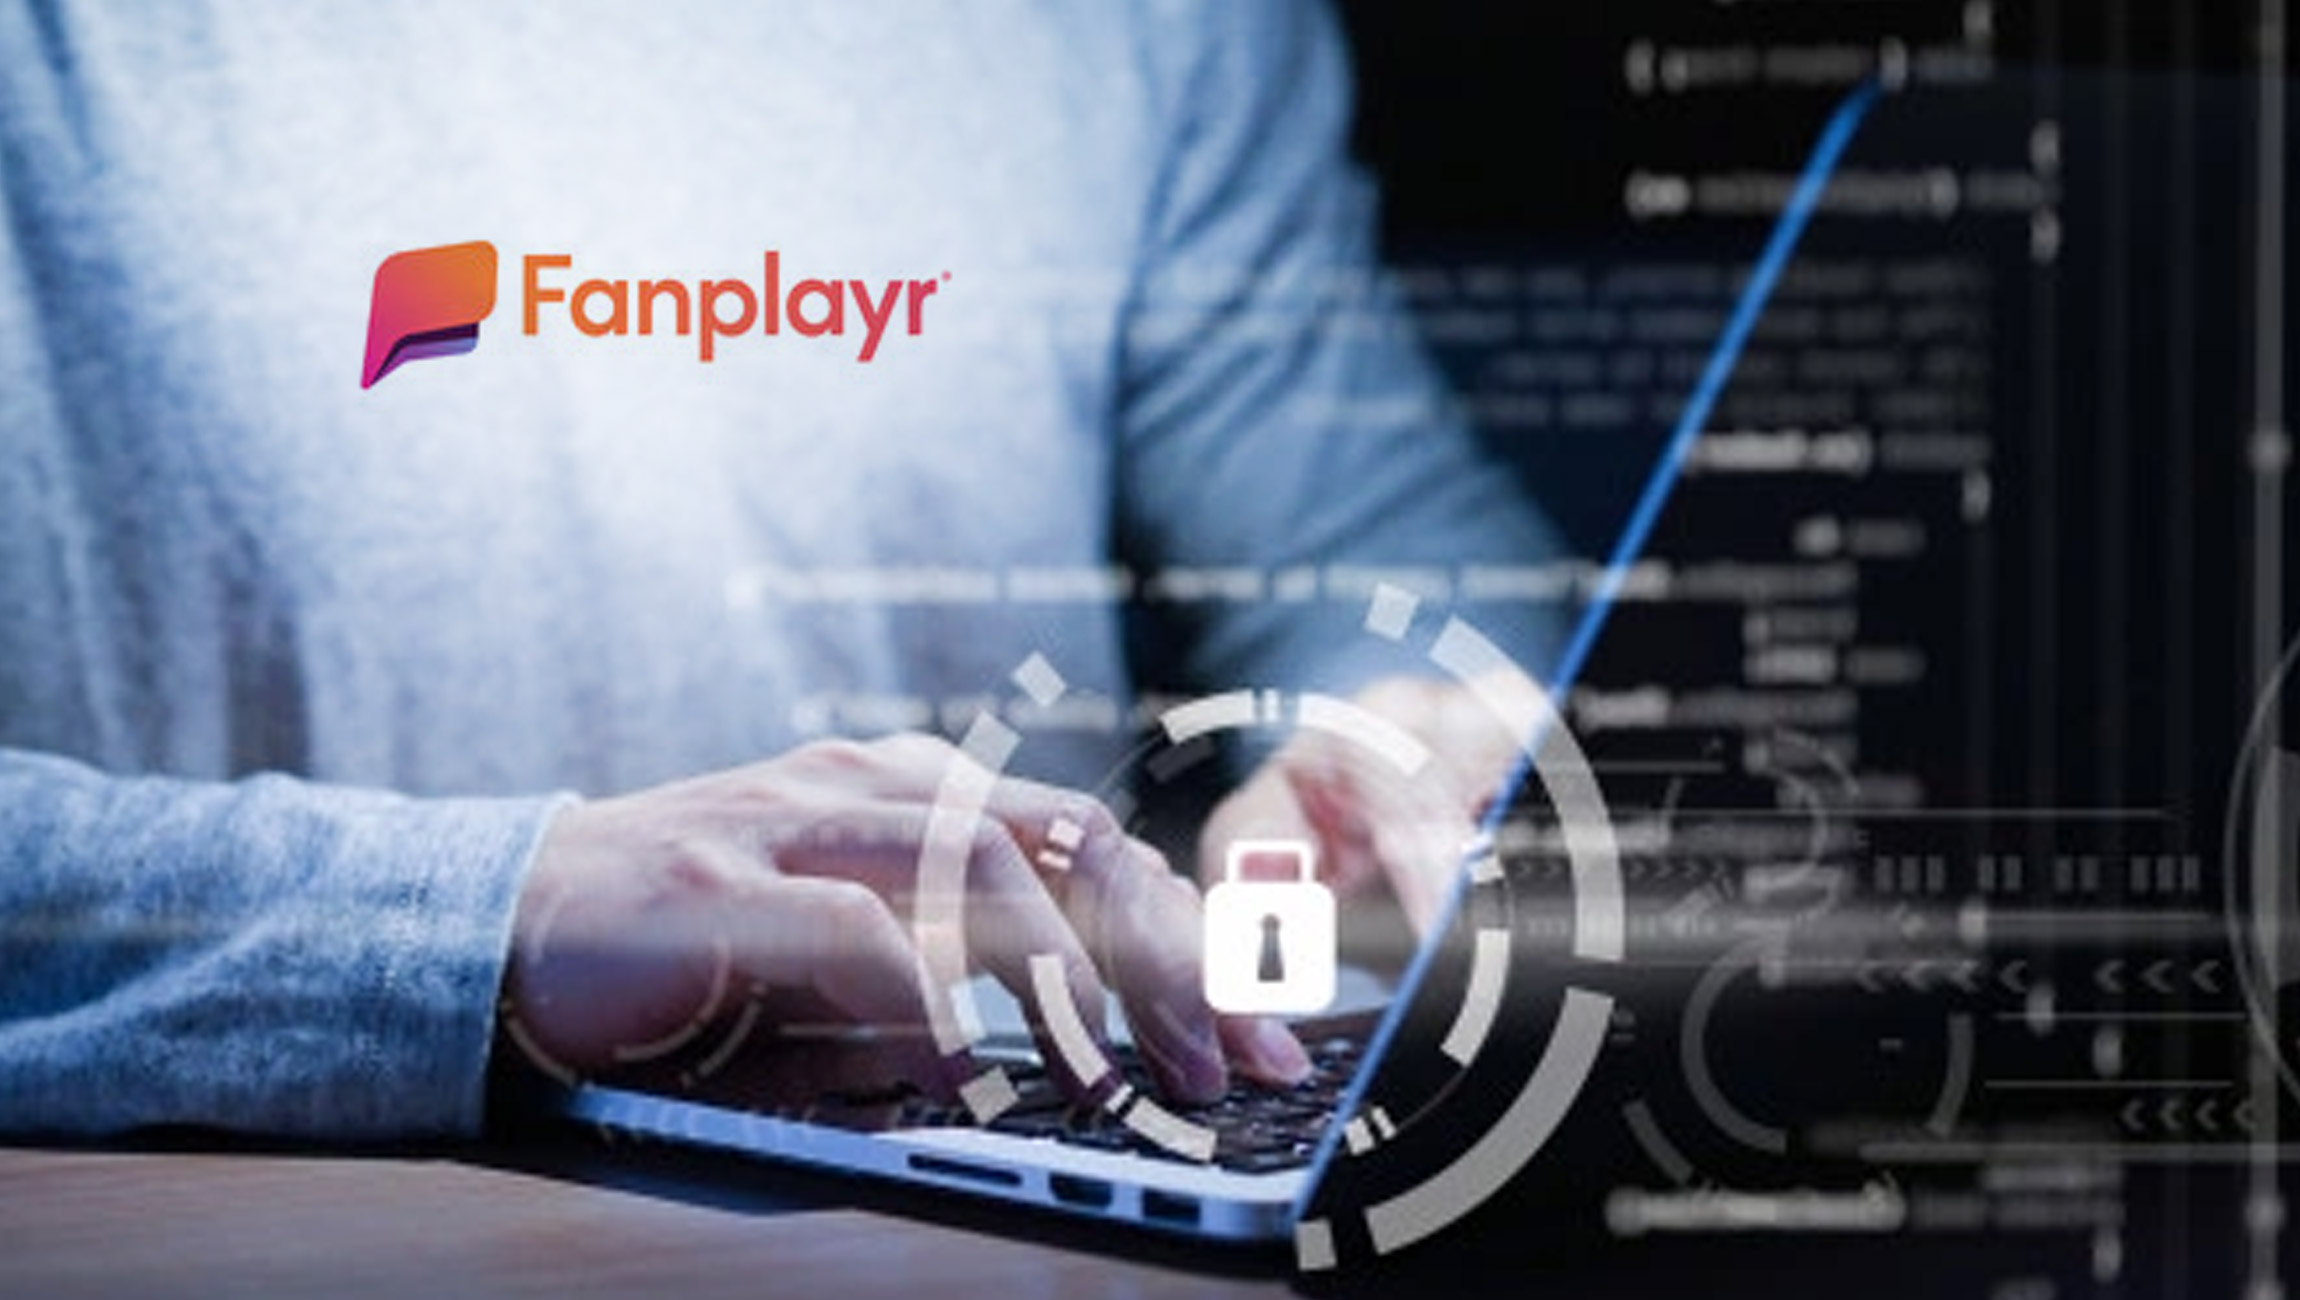 Fanplayr-Receives-SOC-2-Type-2-Certification-for-Data-Security-Processes-from-AICPA